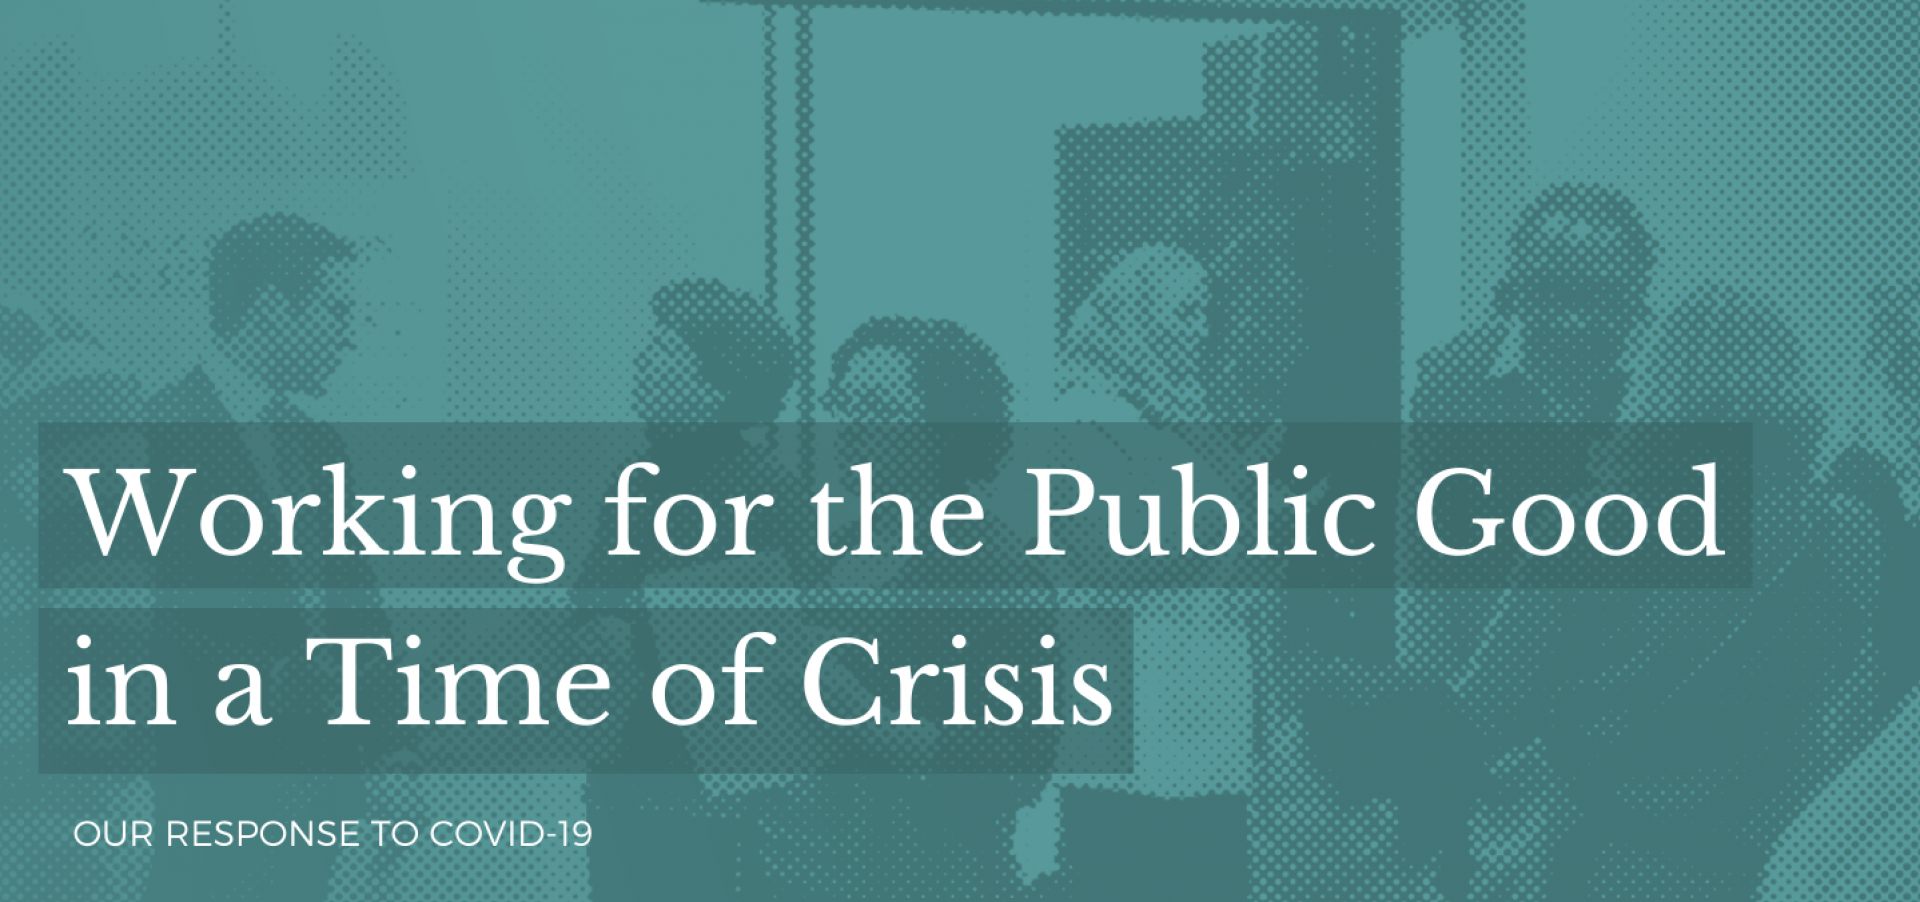 Working for the Public Good in a Time of Crisis